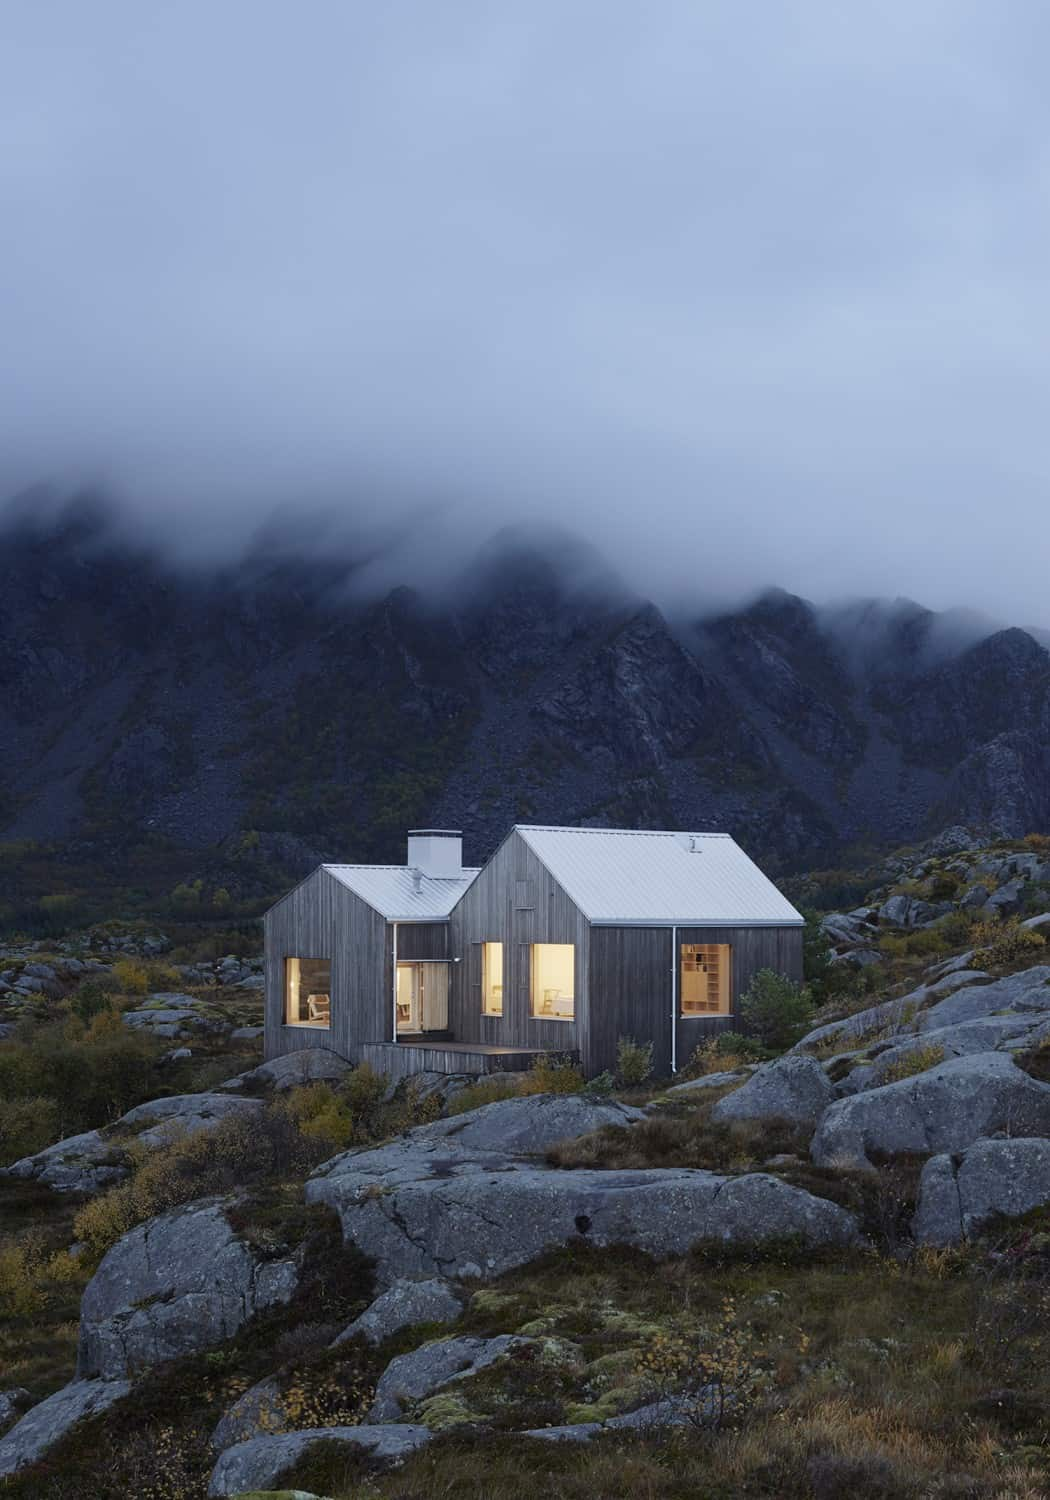 Norwegian Sea Vega Island Adorns Cottage by Kolman Boye (16)